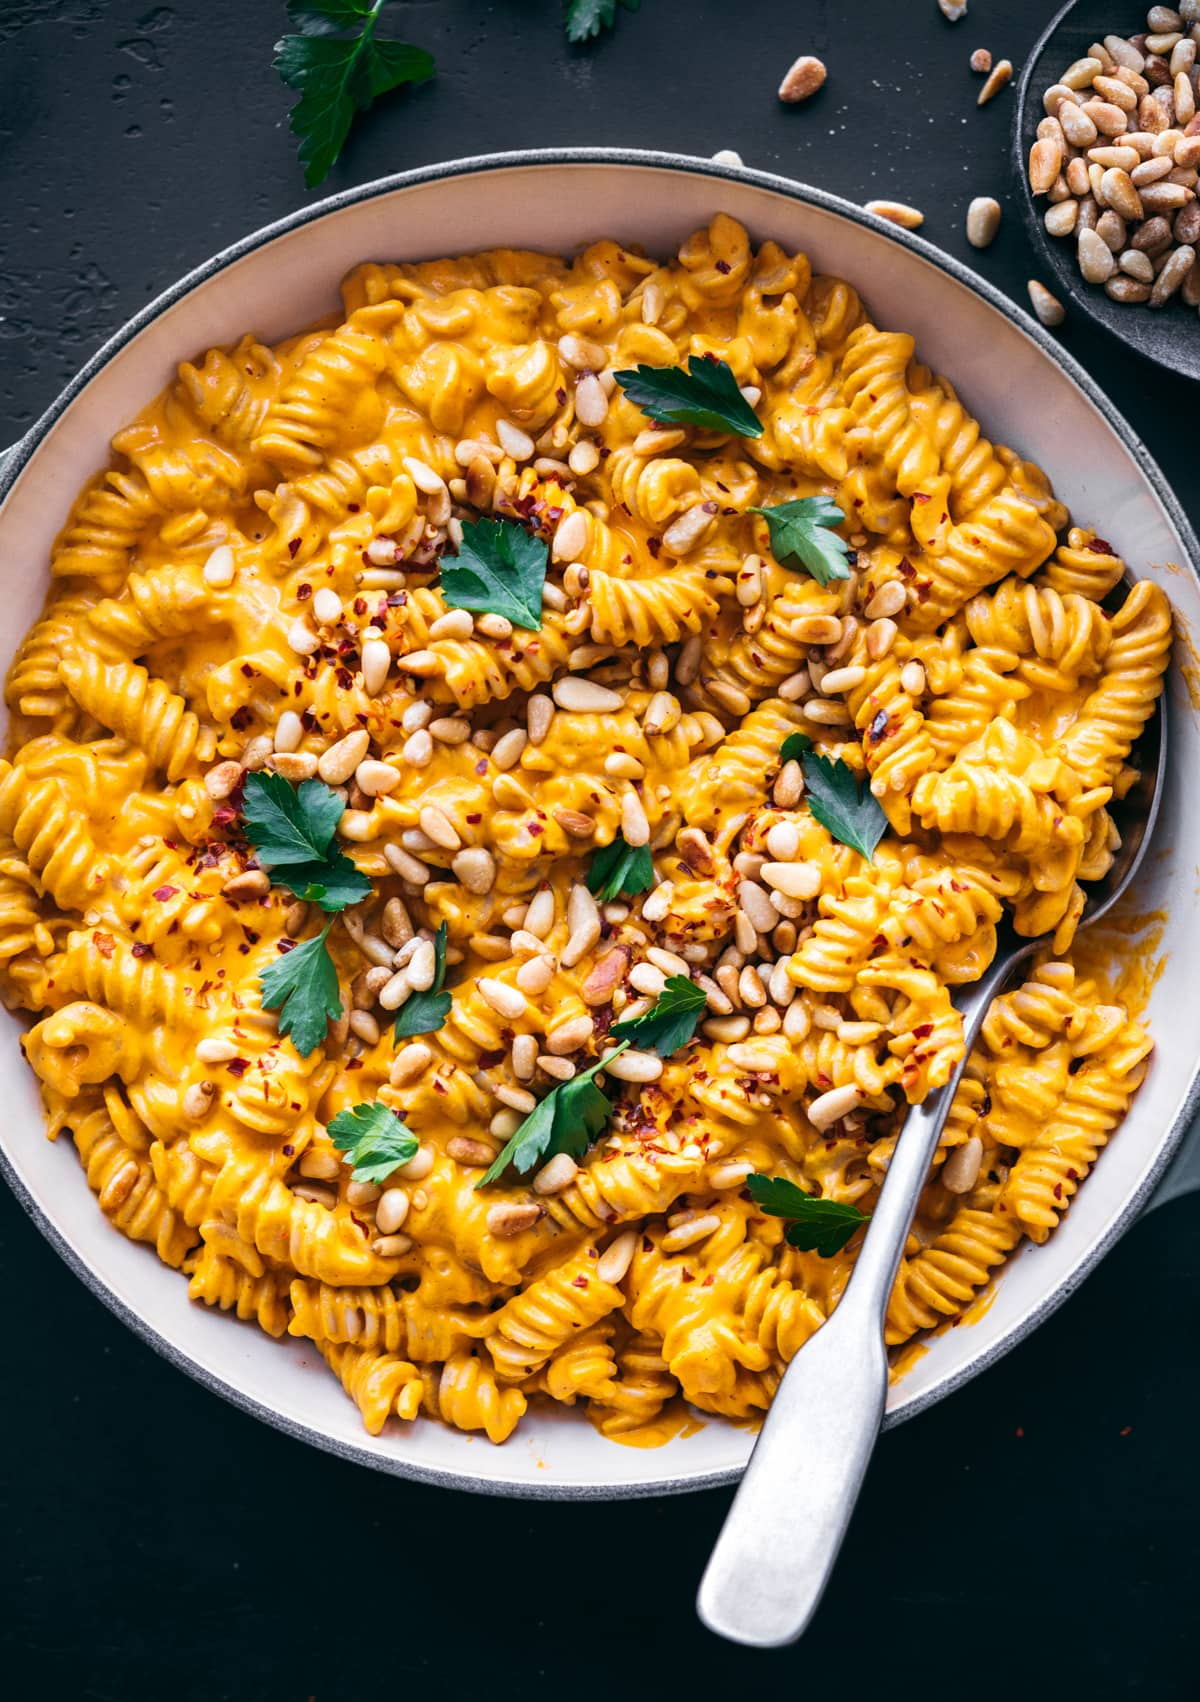 overhead view of creamy vegan roasted red pepper pasta in pan topped with pine nuts and red pepper flakes.